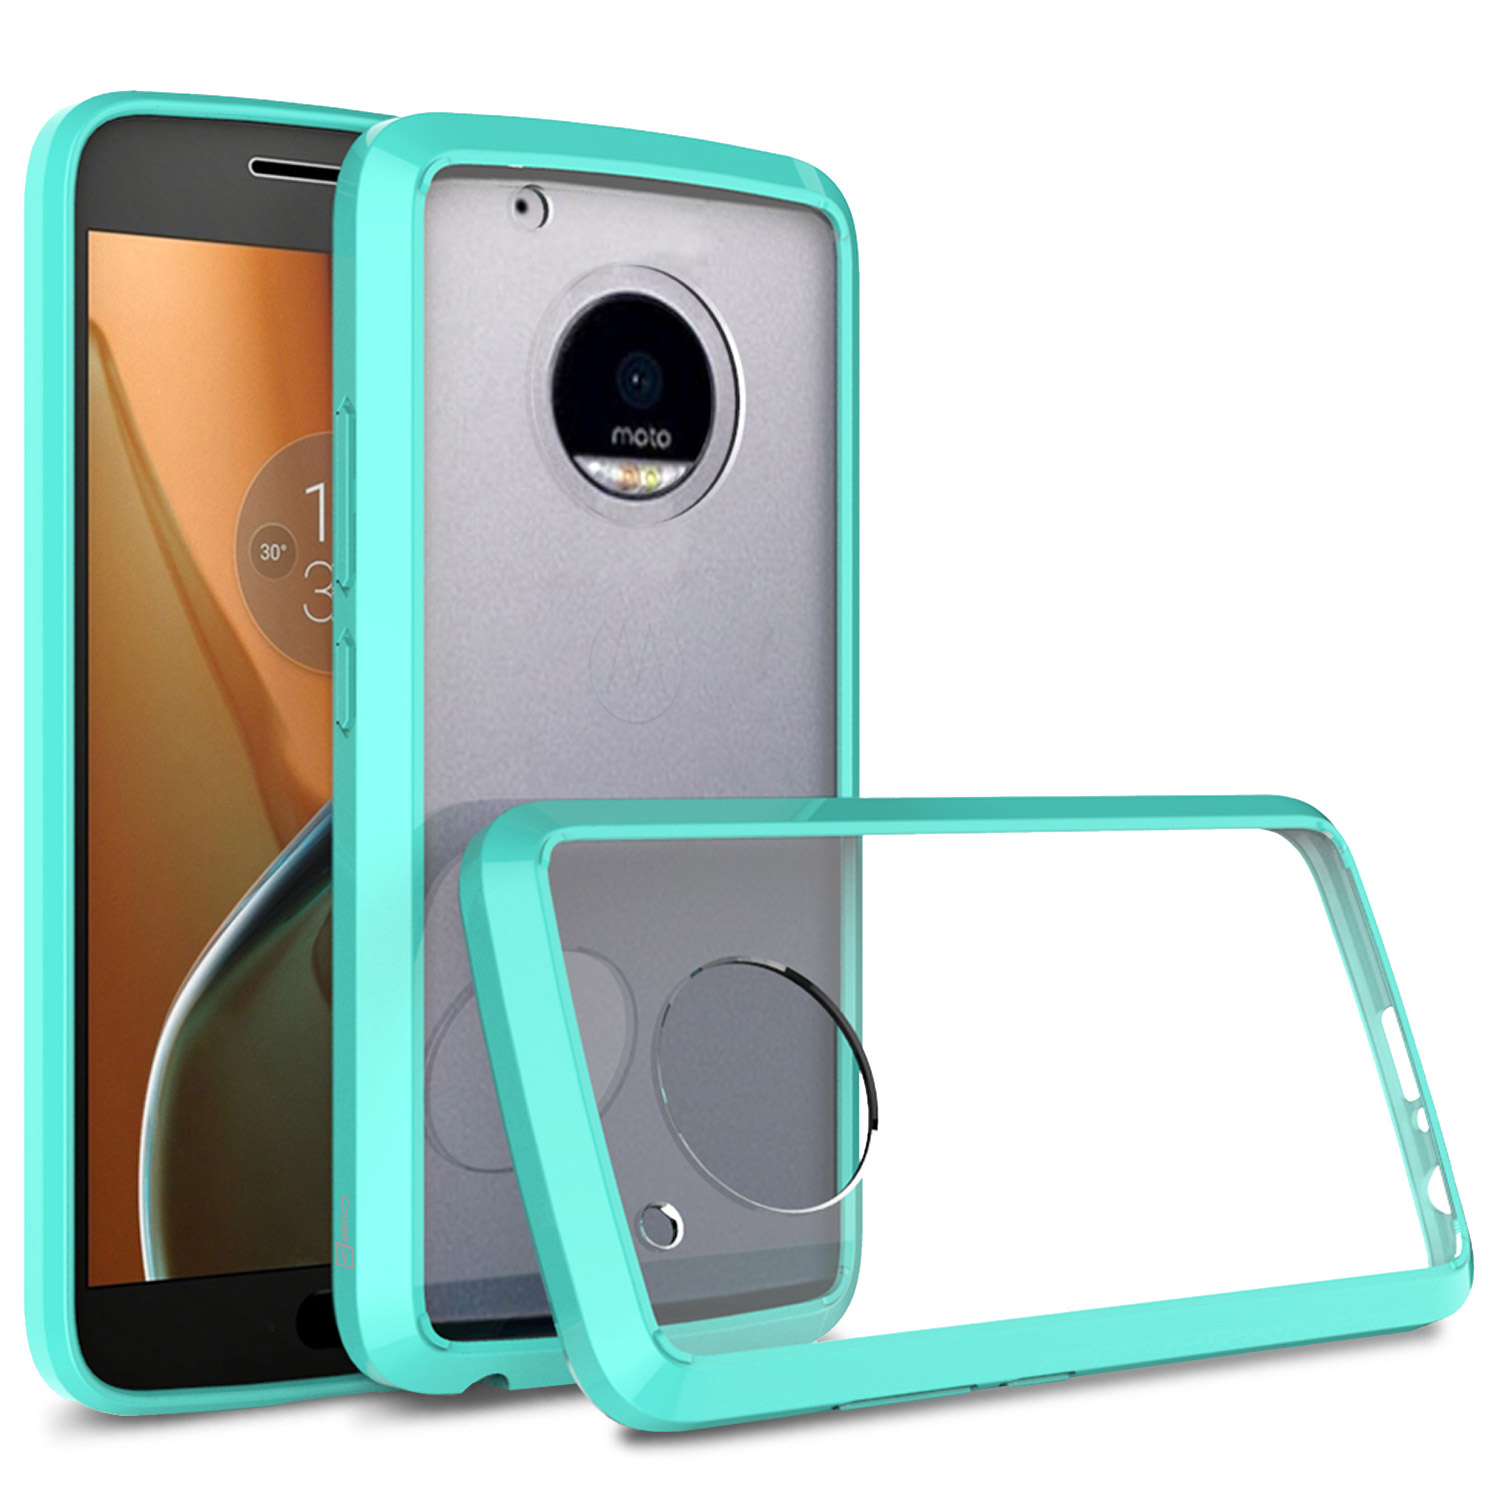 cheap for discount f8e45 cfc78 Details about Teal Hybrid TPU Bumper Hard Cover Case For Motorola Moto G5  Plus / Moto X 2017